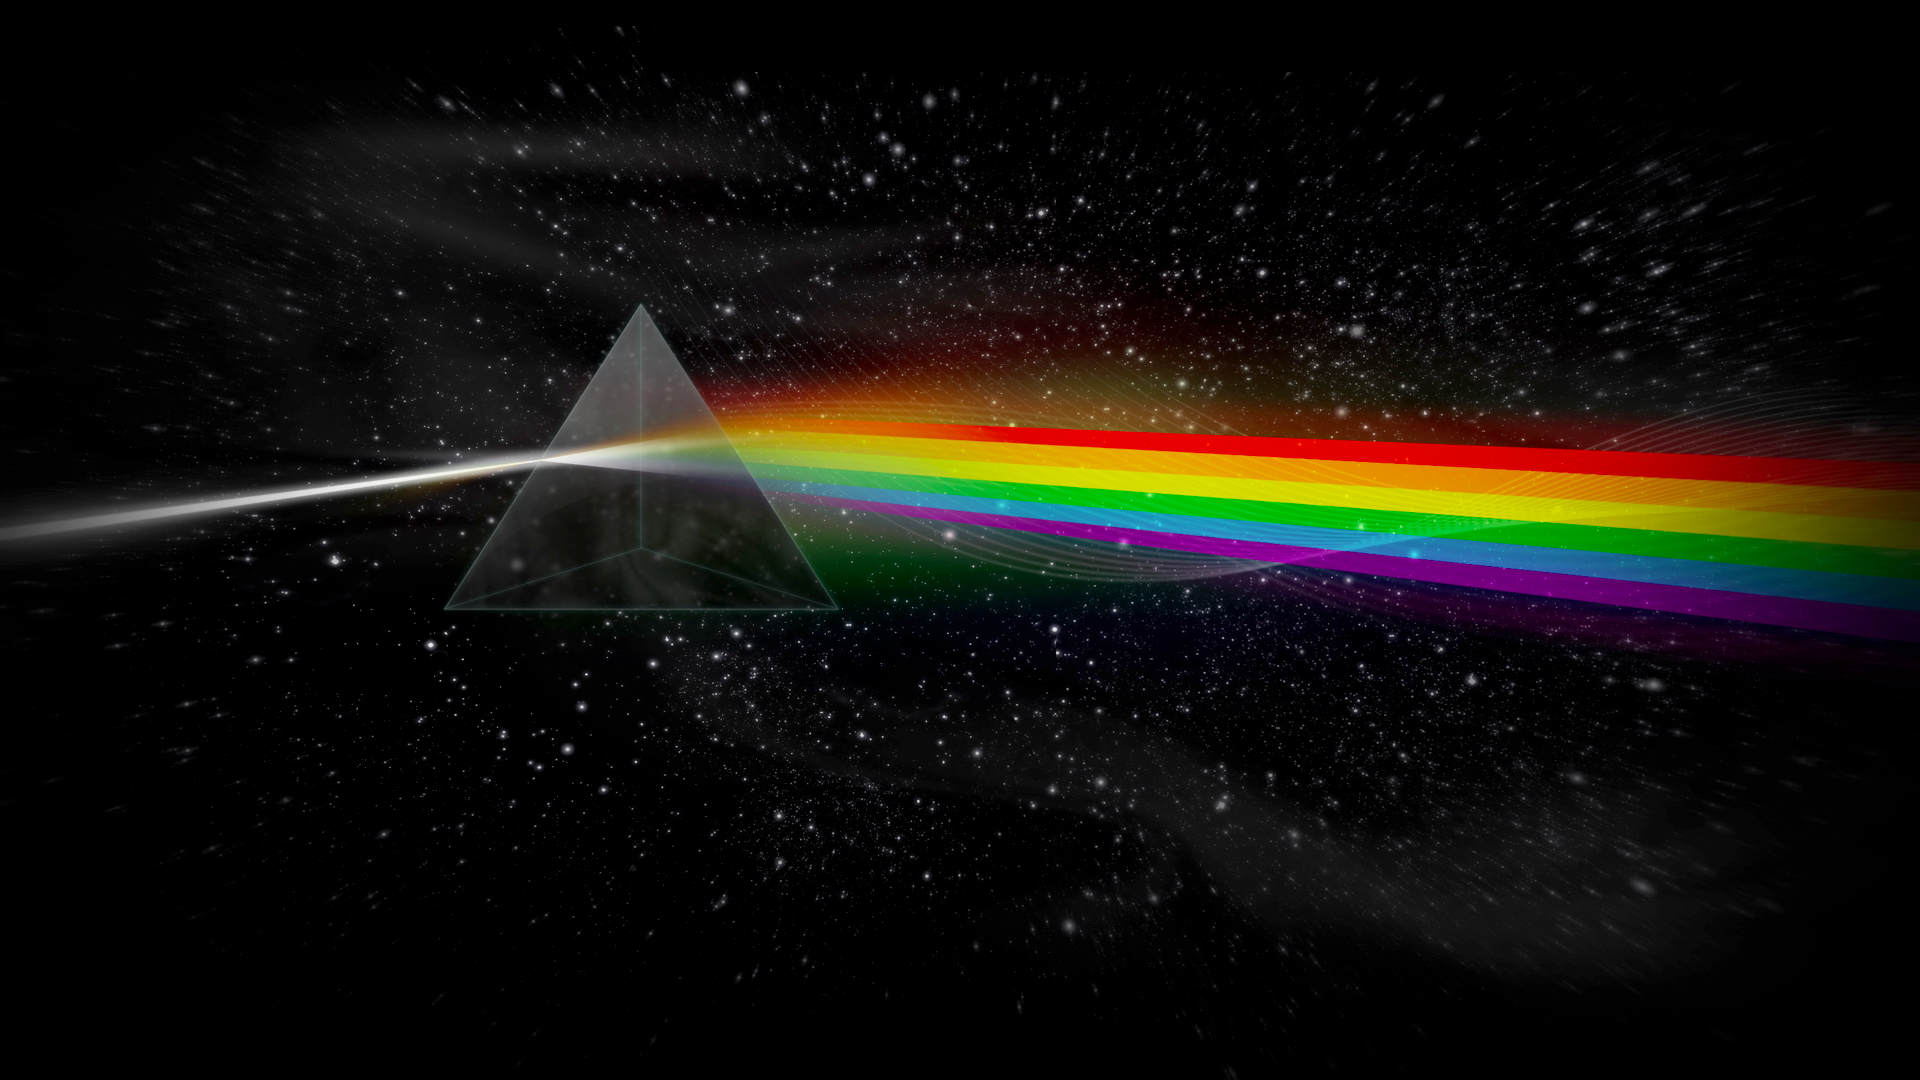 eabeadccf3d-pink-floyd-dark-side-progressive-rock-wallpaper-wp3405144